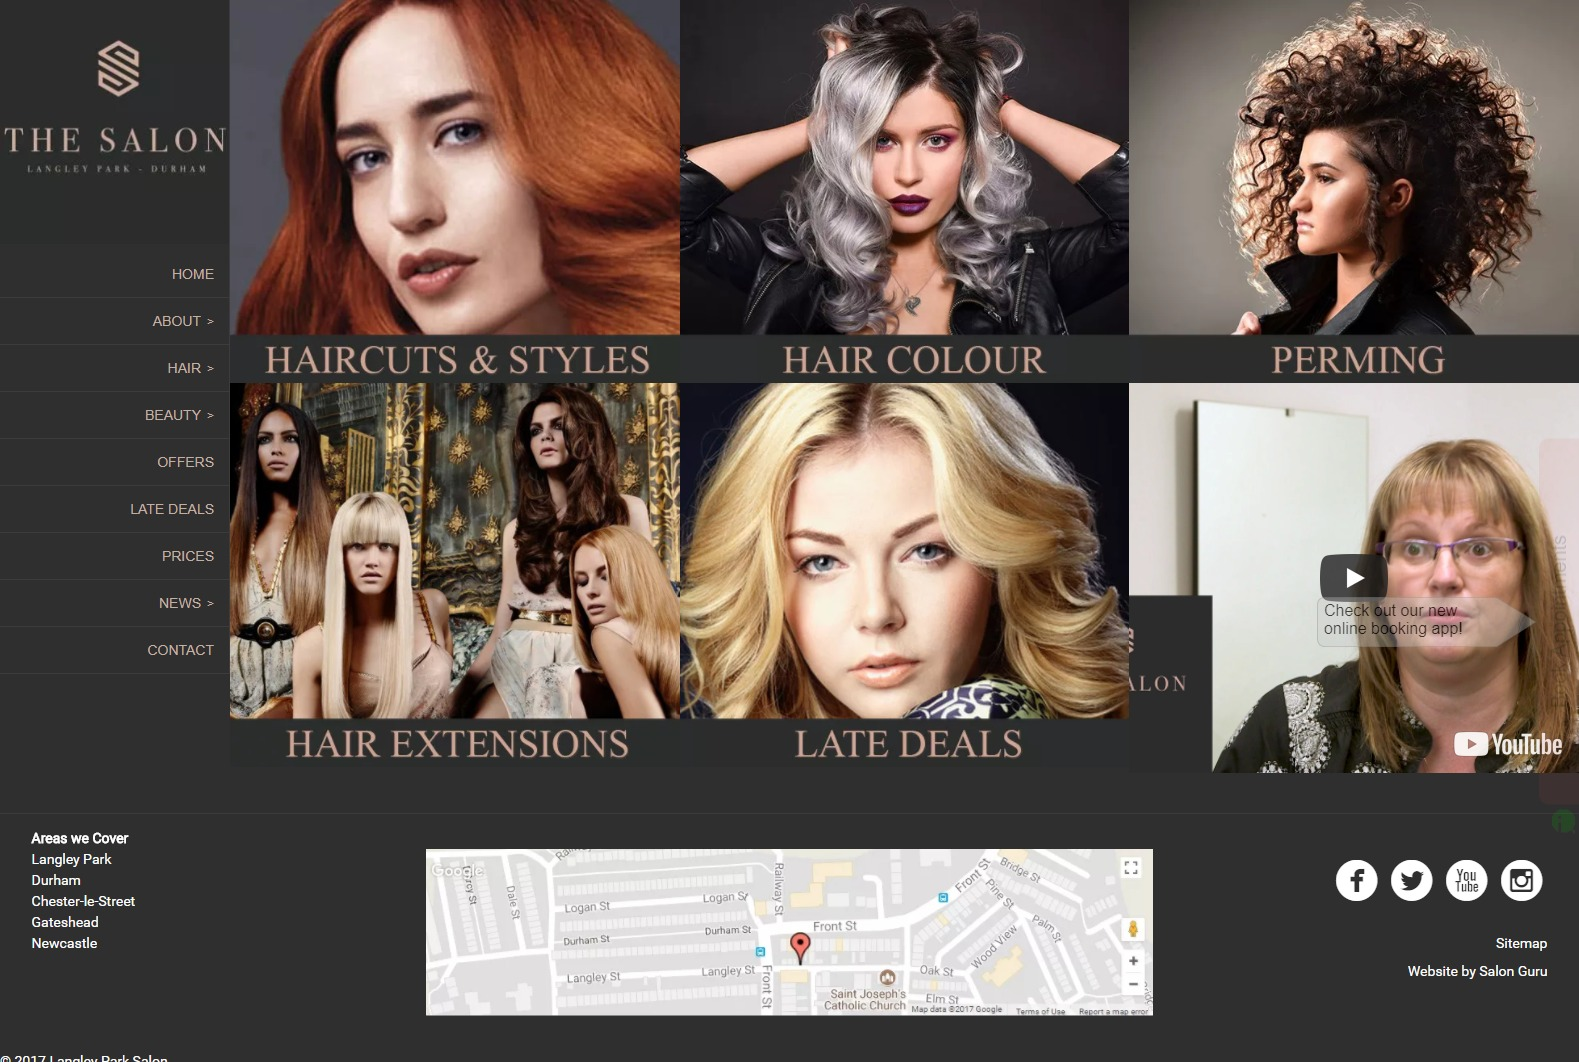 Our salon website & marketing clients in the UK & USA